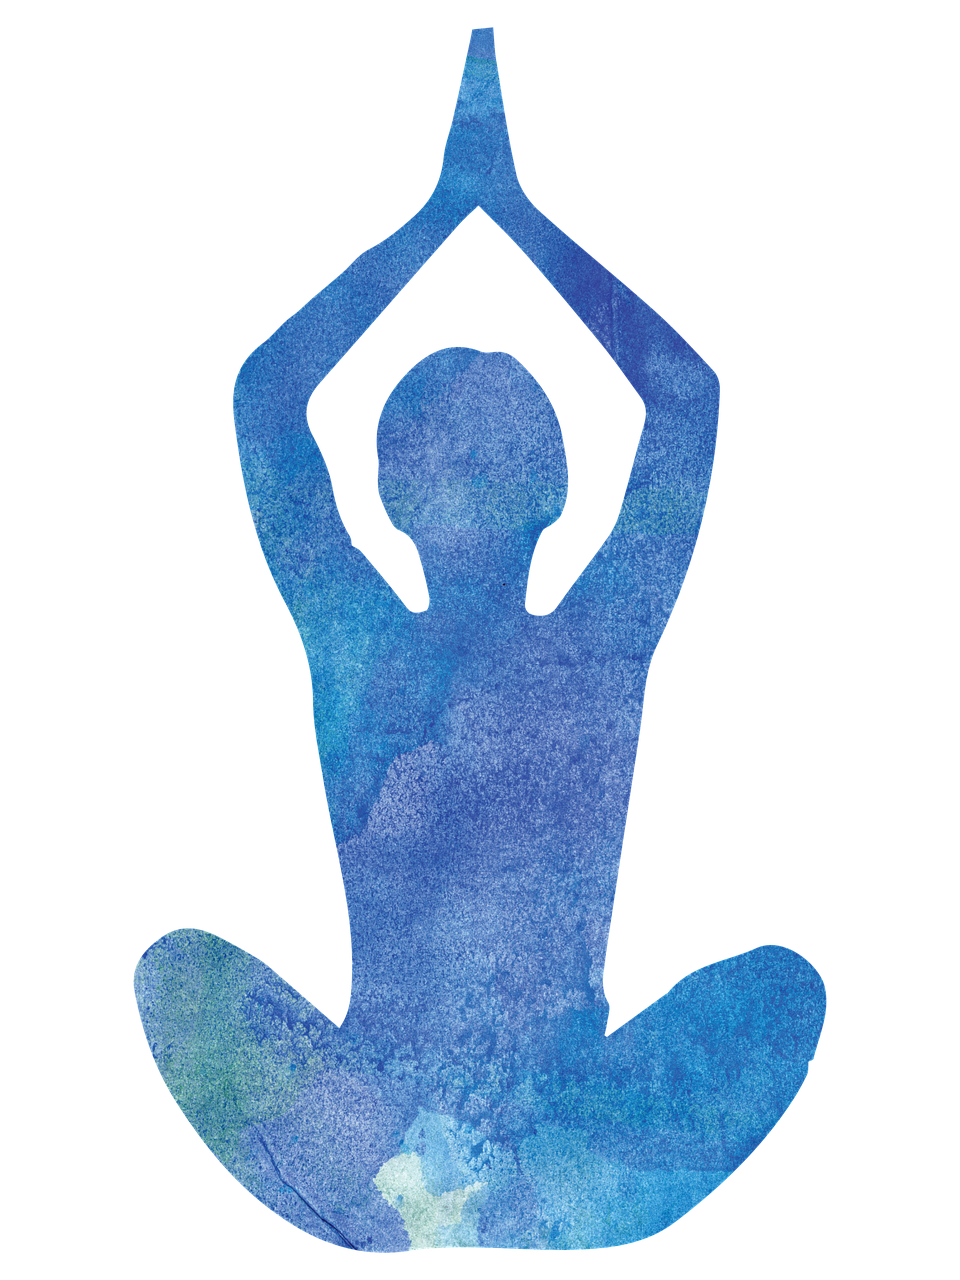 Yoga Lotus Vector Graphics Position Meditation PNG Image